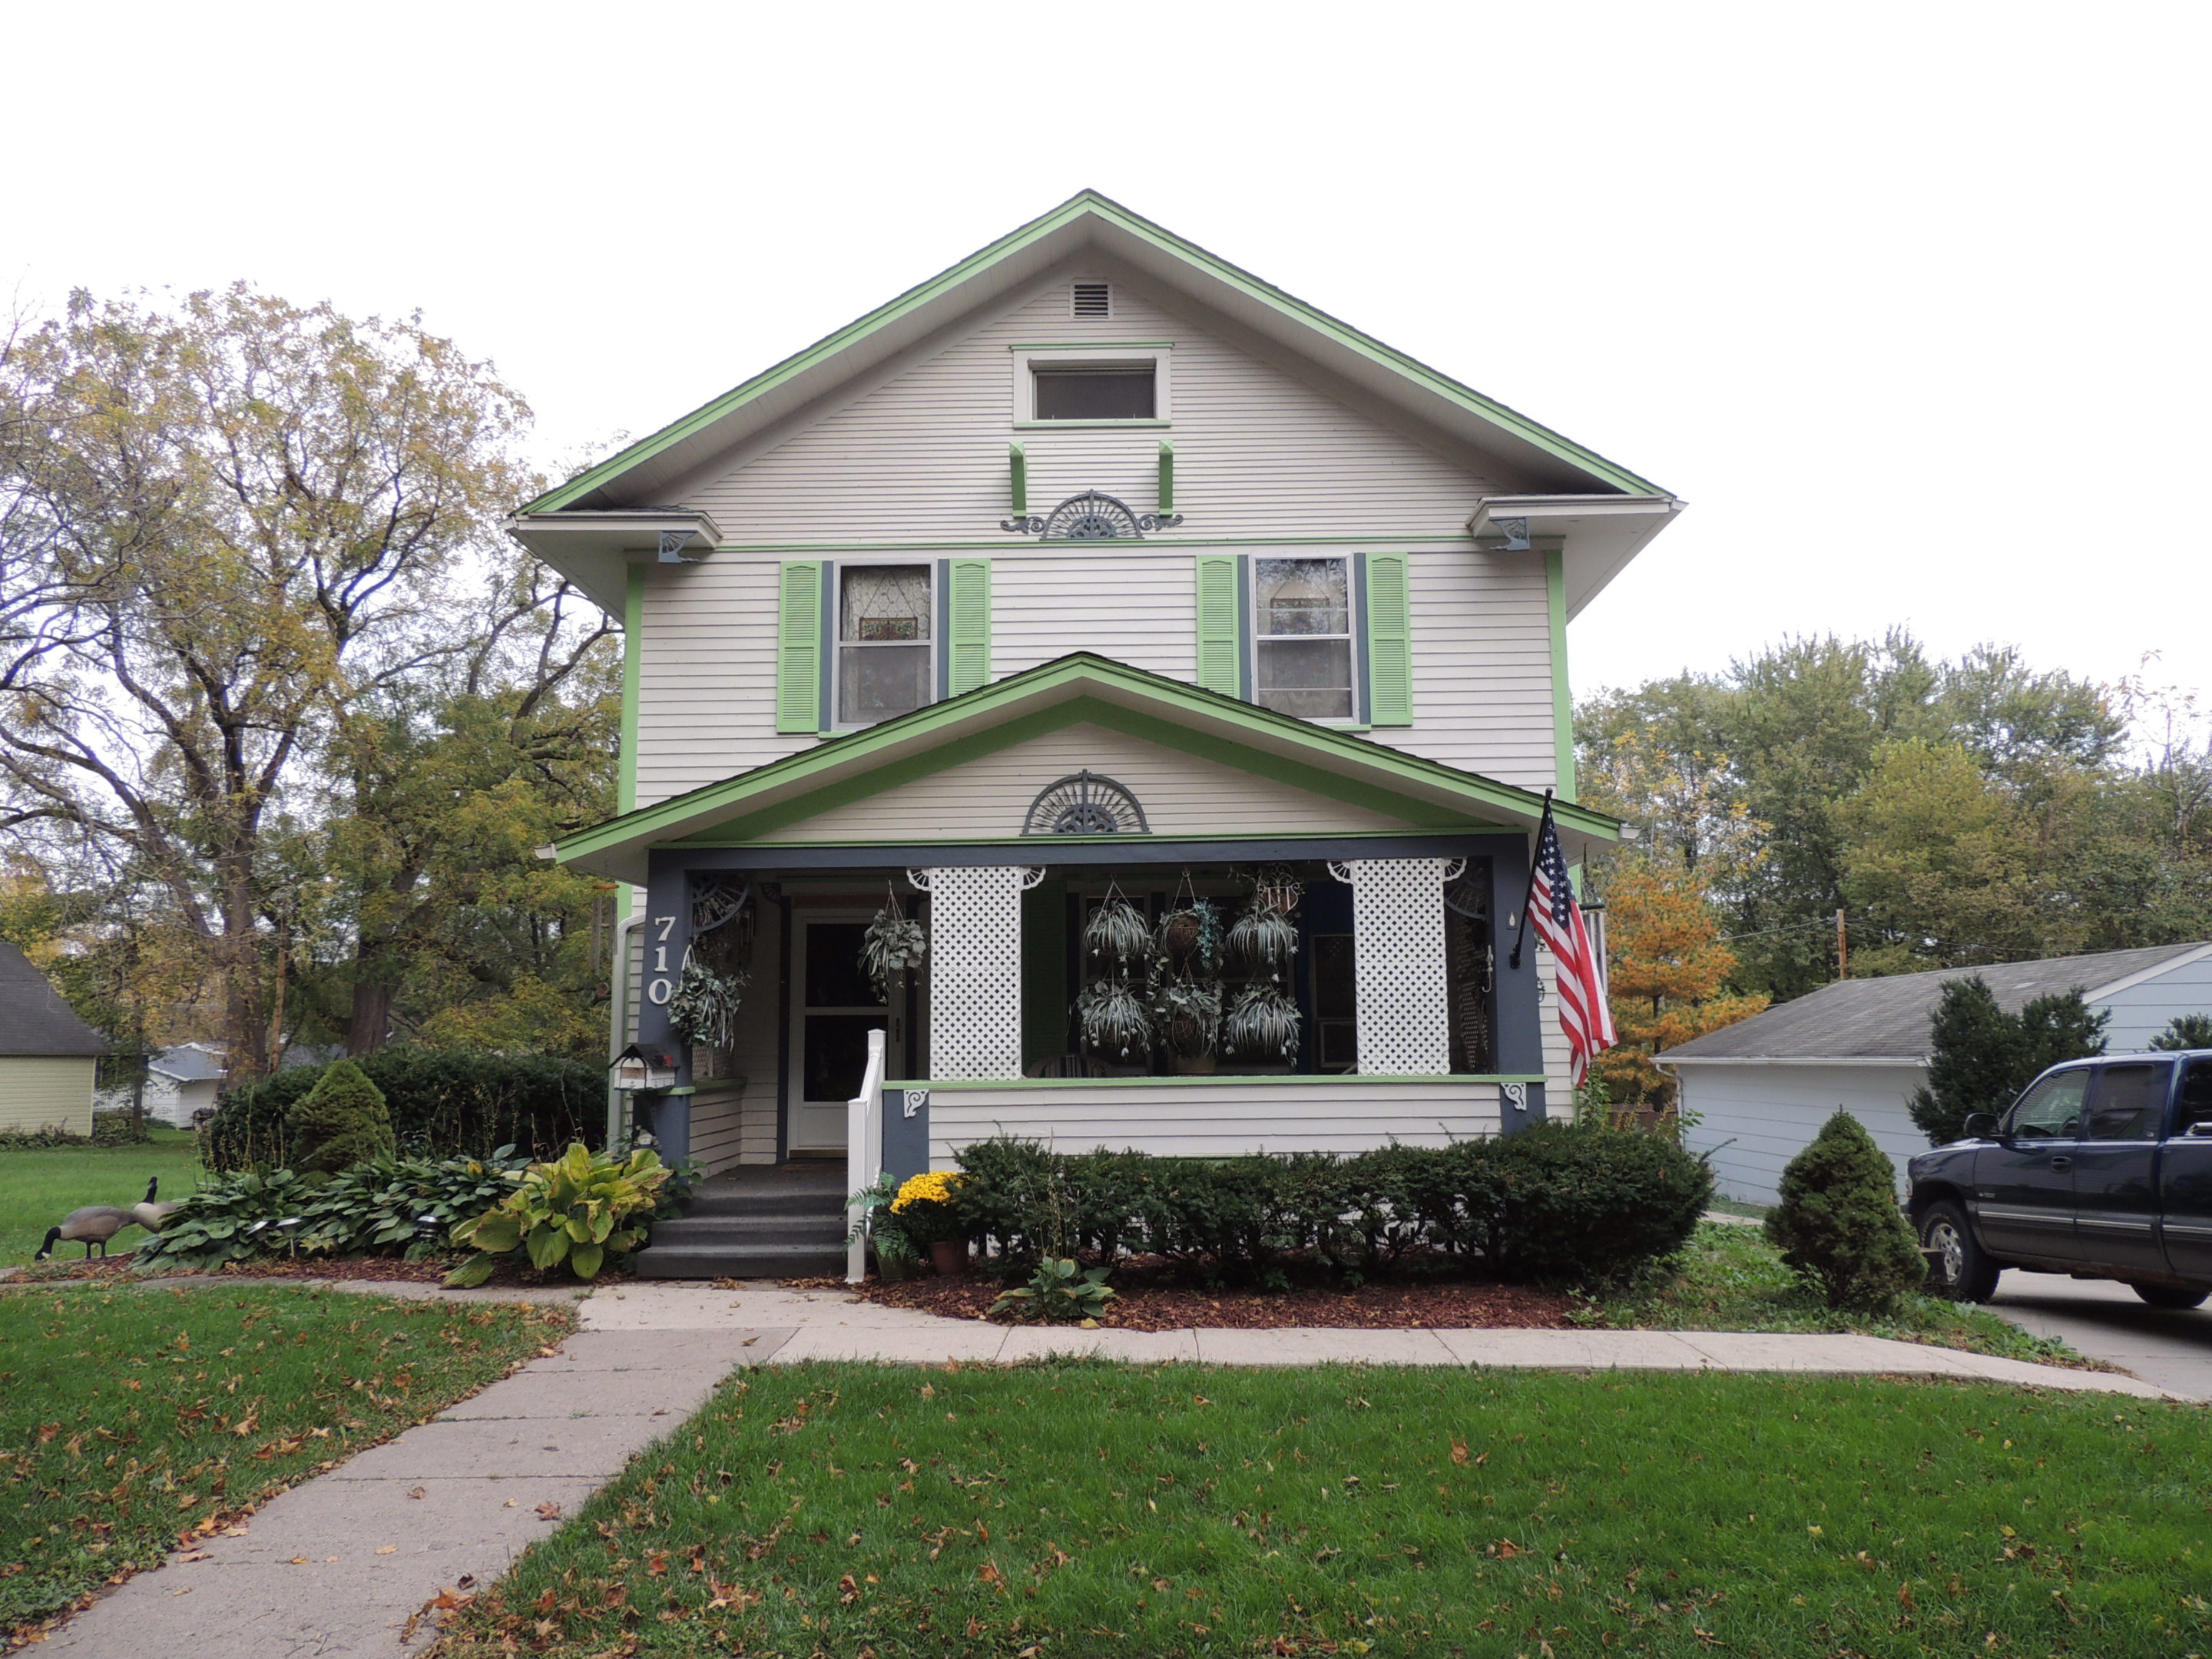 Photo of house 710 5th Avenue